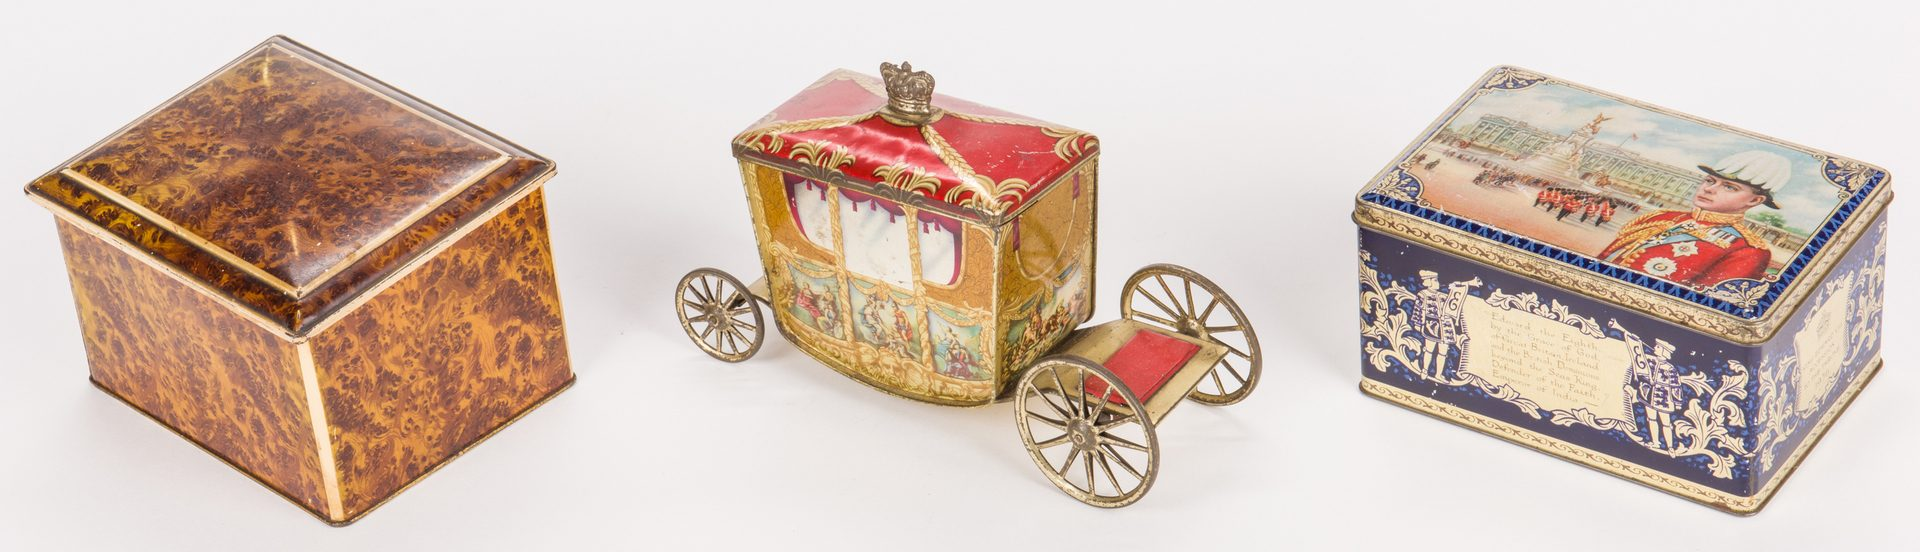 Lot 805: Collection of 6 English Biscuit Tins